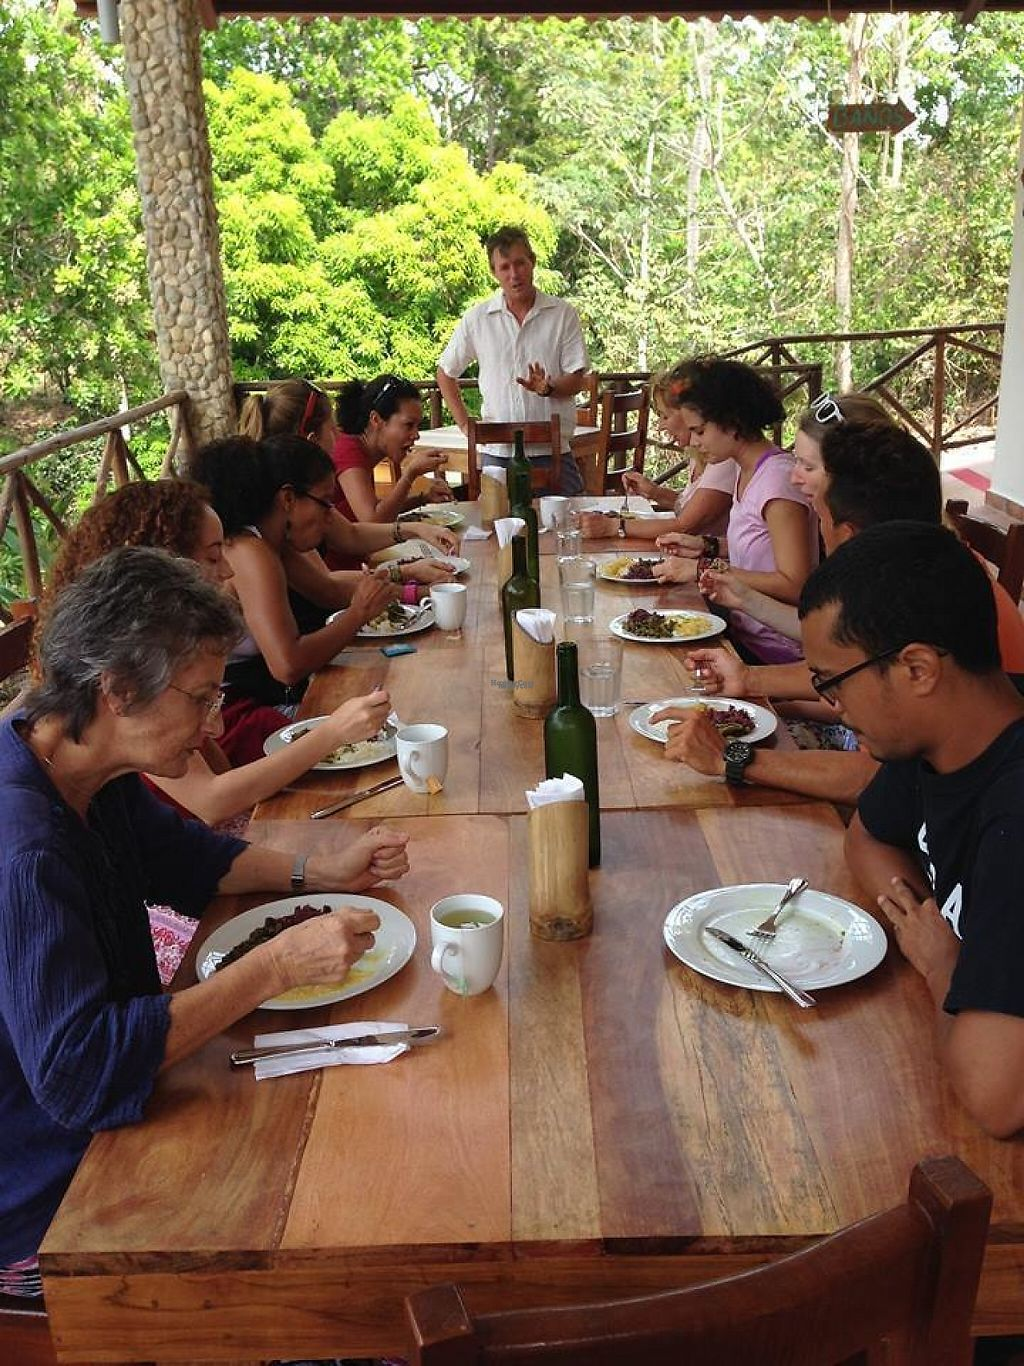 """Photo of Istmo Yoga and Adventure Retreat  by <a href=""""/members/profile/VegPanama"""">VegPanama</a> <br/>table <br/> April 17, 2017  - <a href='/contact/abuse/image/90513/249167'>Report</a>"""